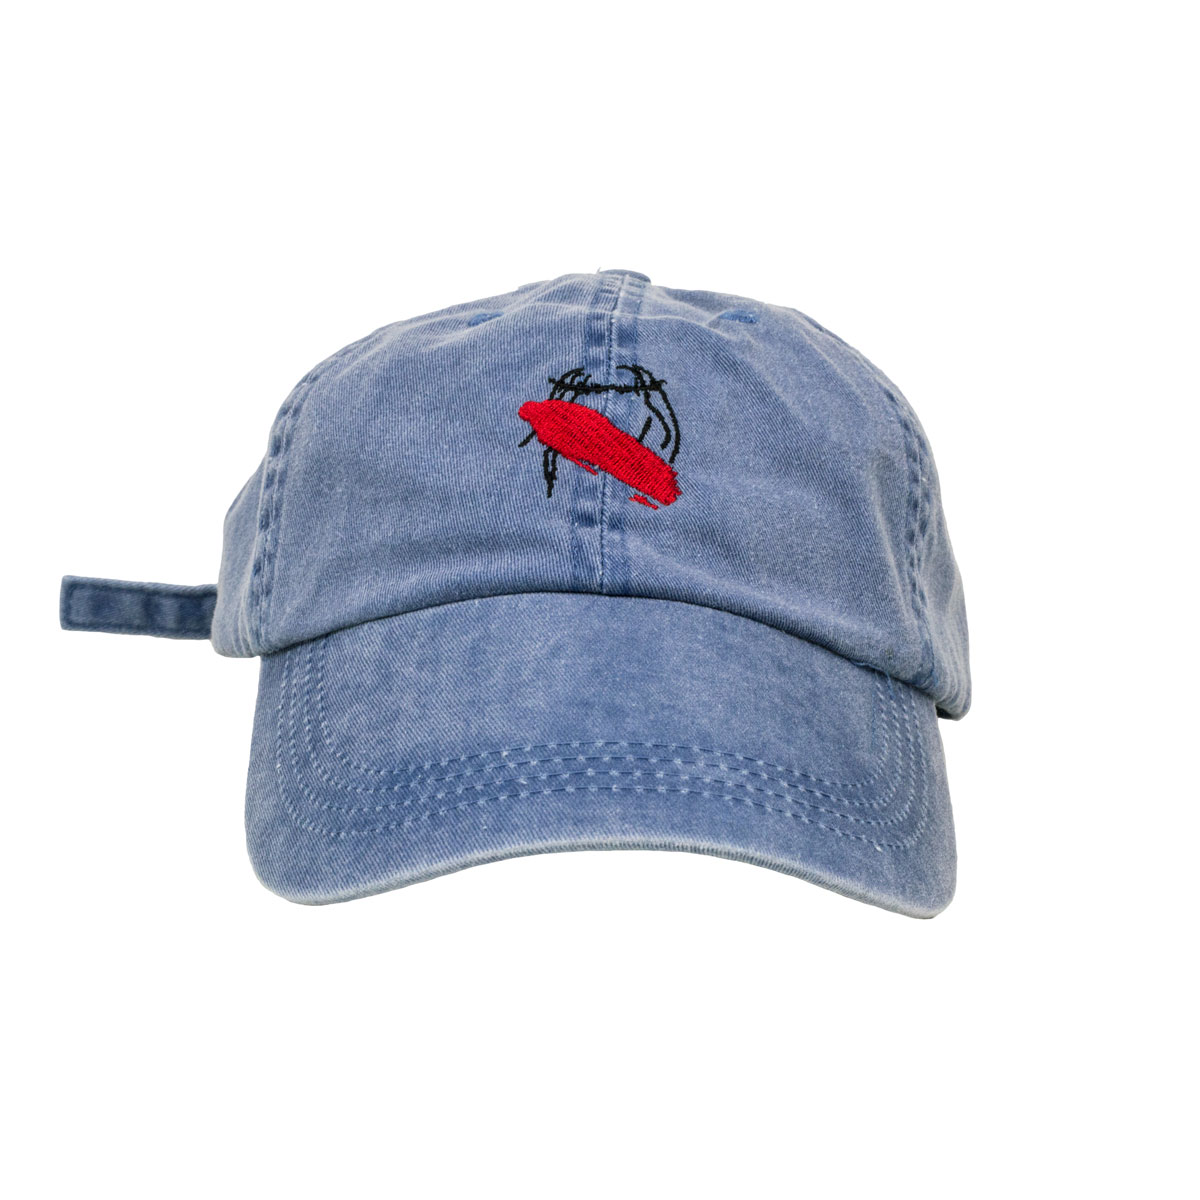 Denim_Cap.jpg